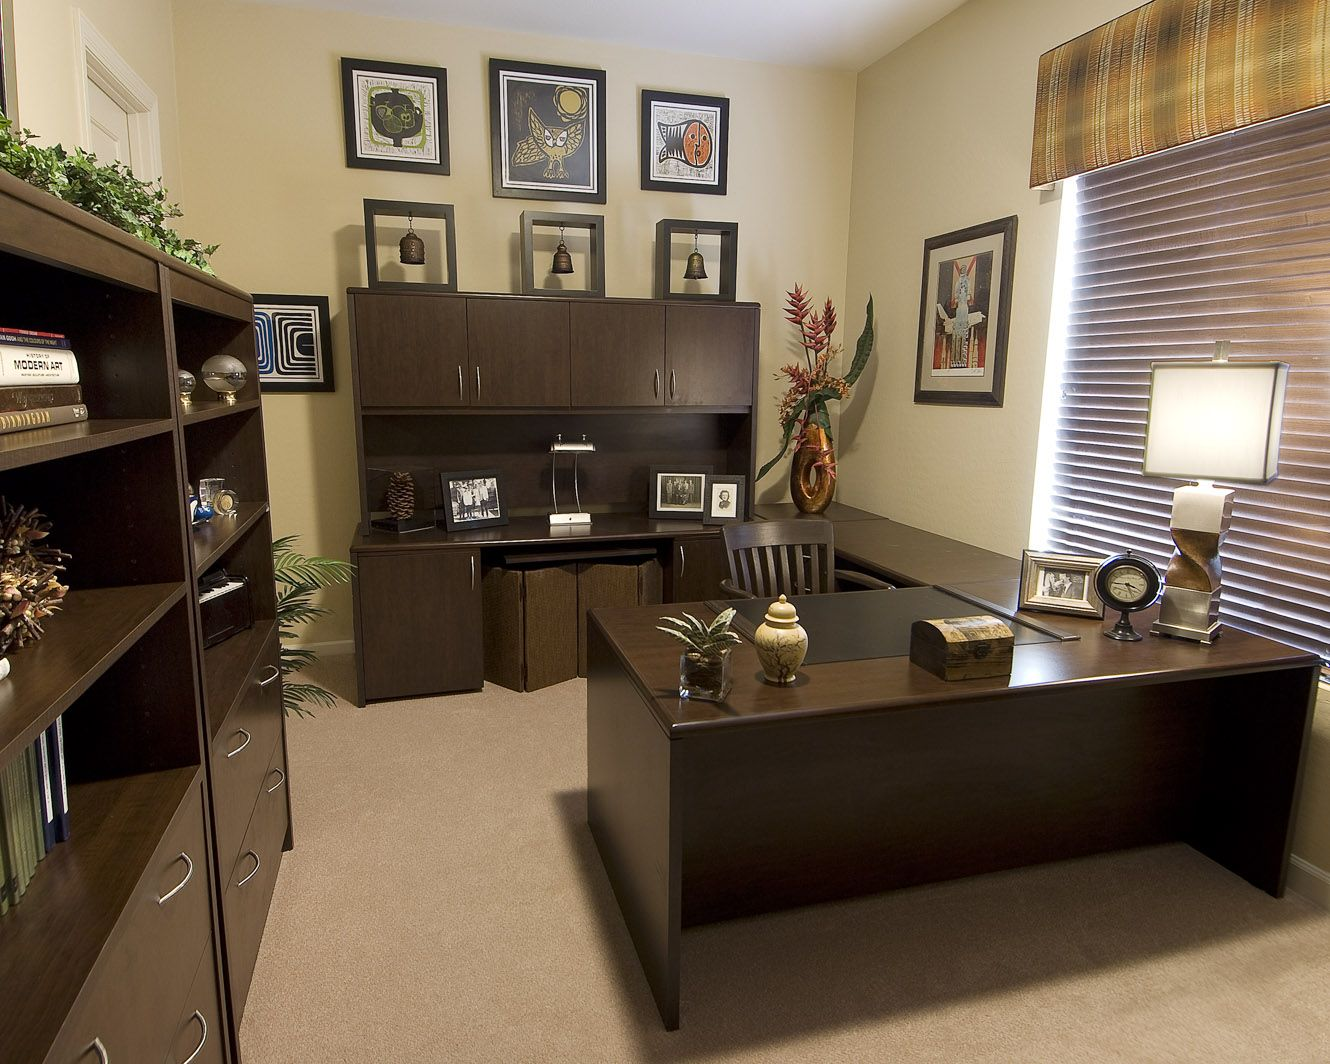 Office bookshelf decor - Sightly Office Decorating Ideas With Wooden Table Also Bookshelf Colored In Dark